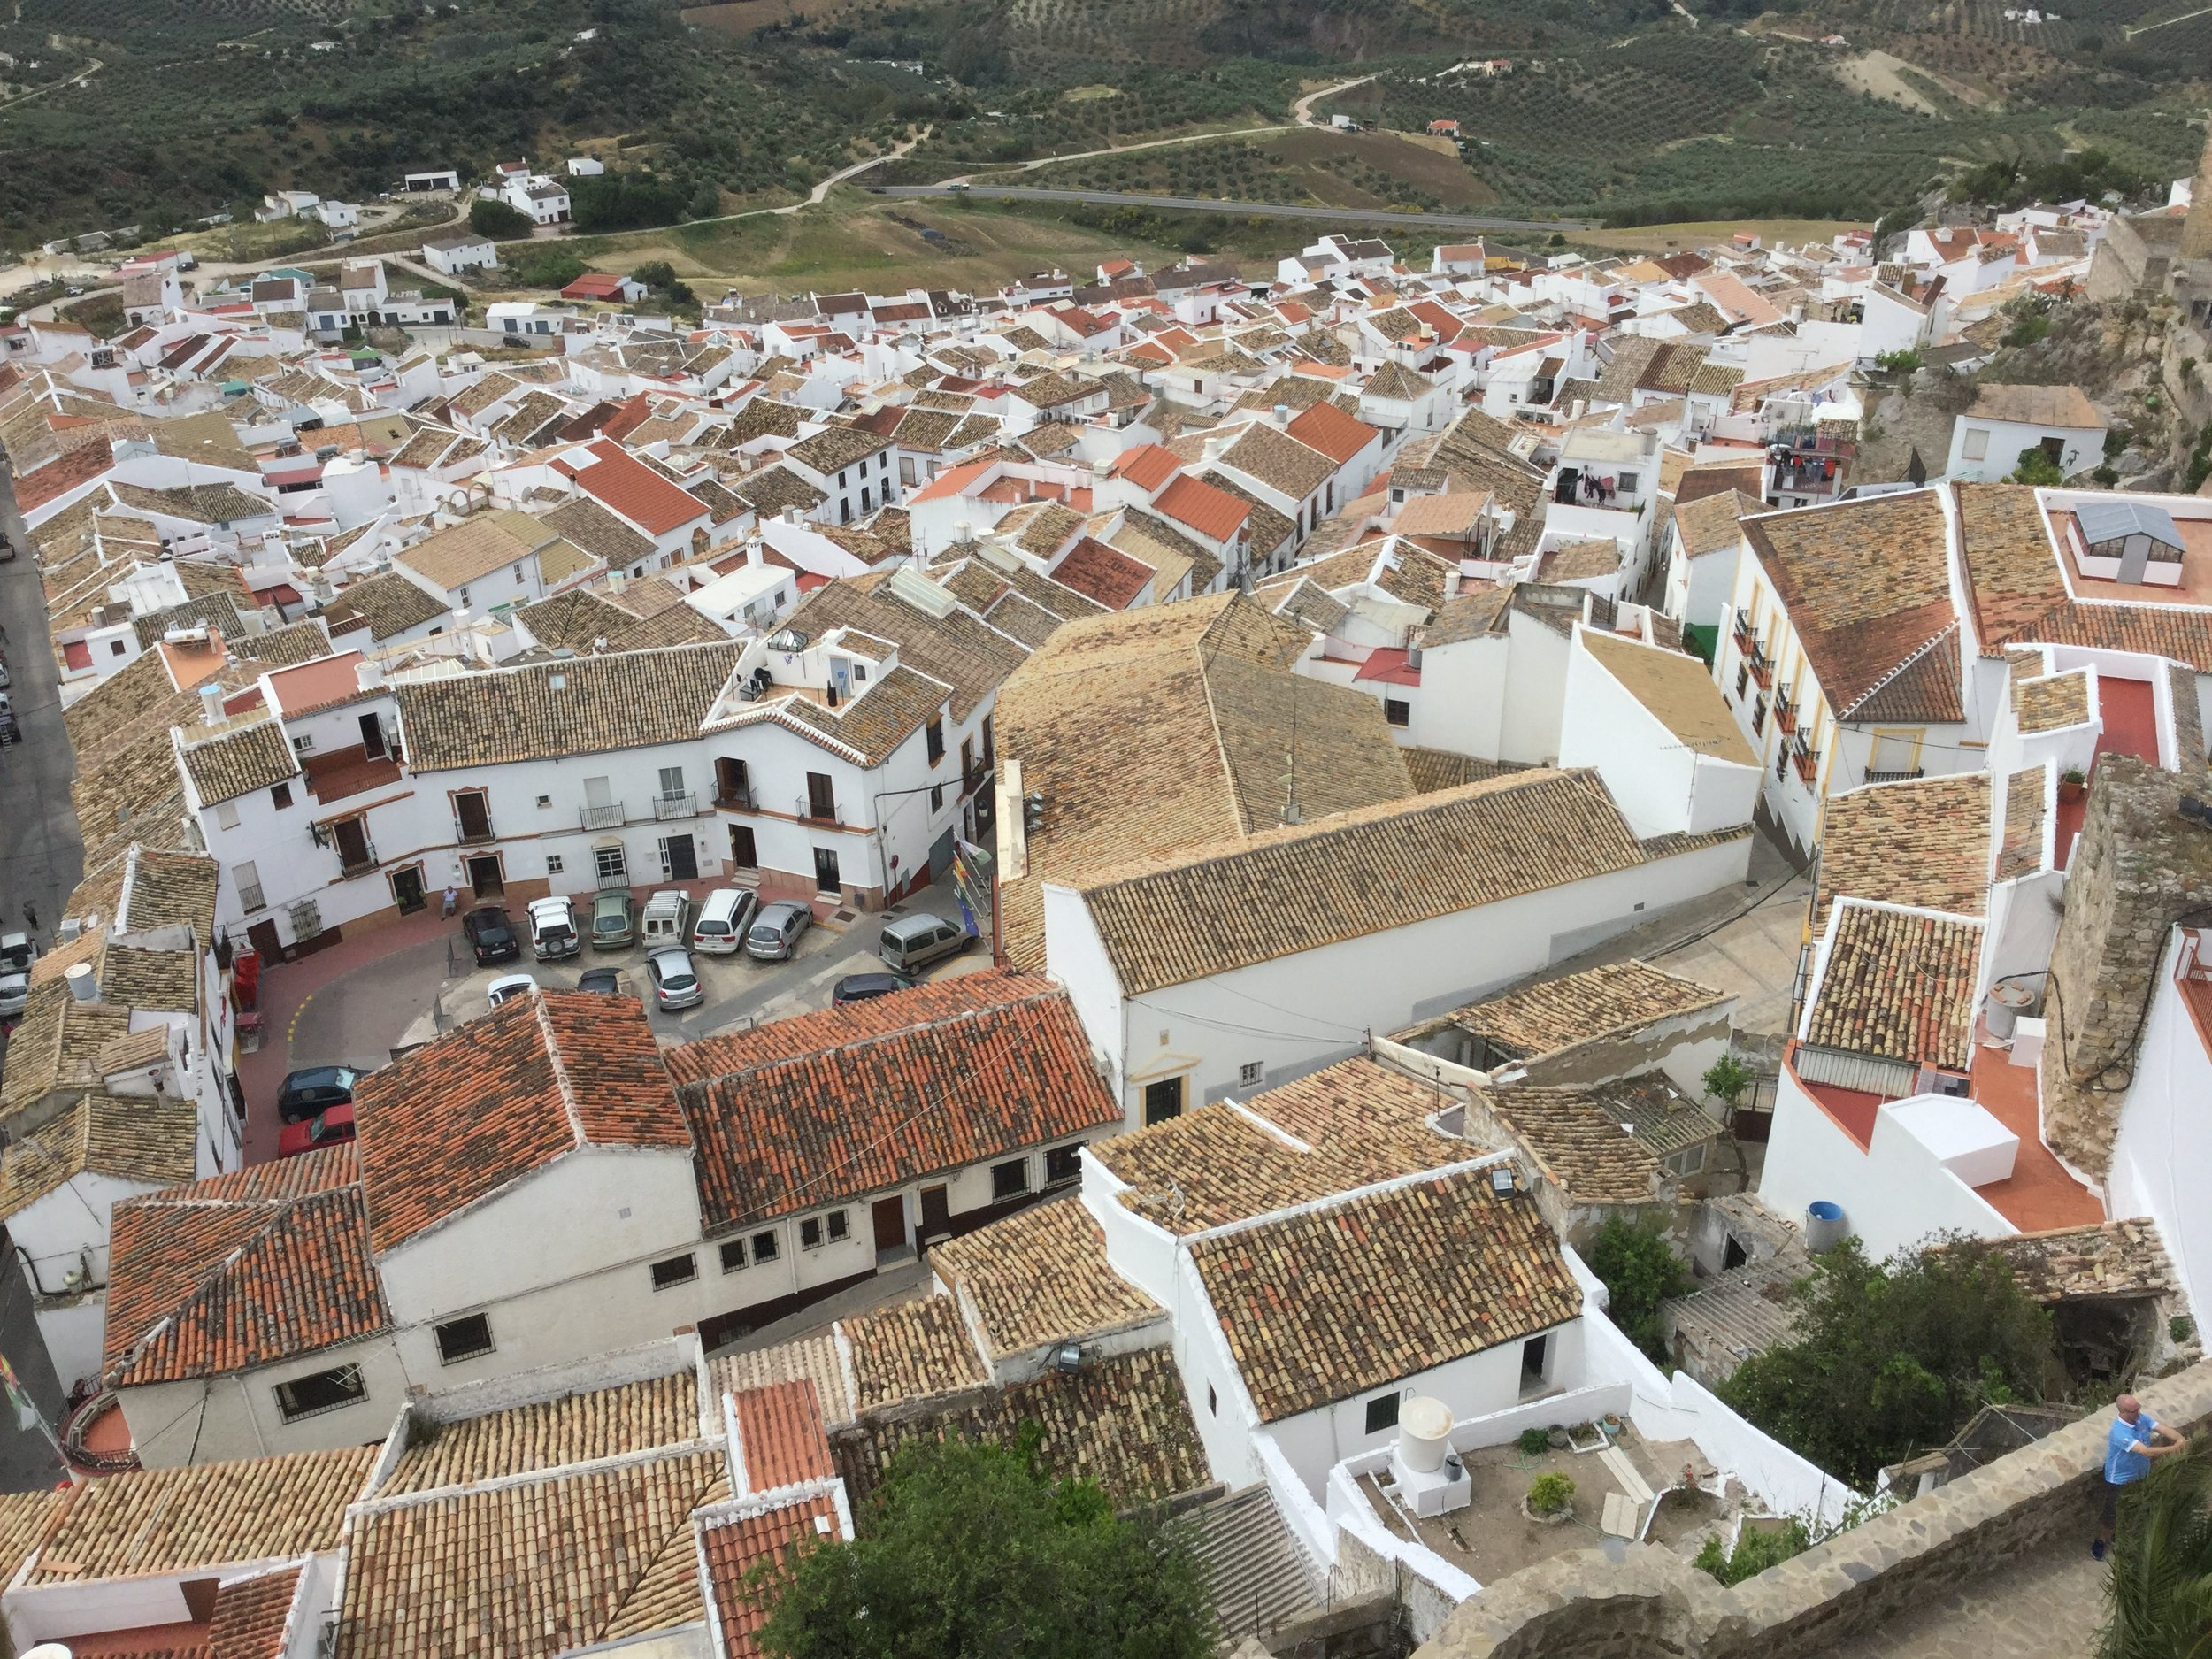 Looking down at all the roofs.